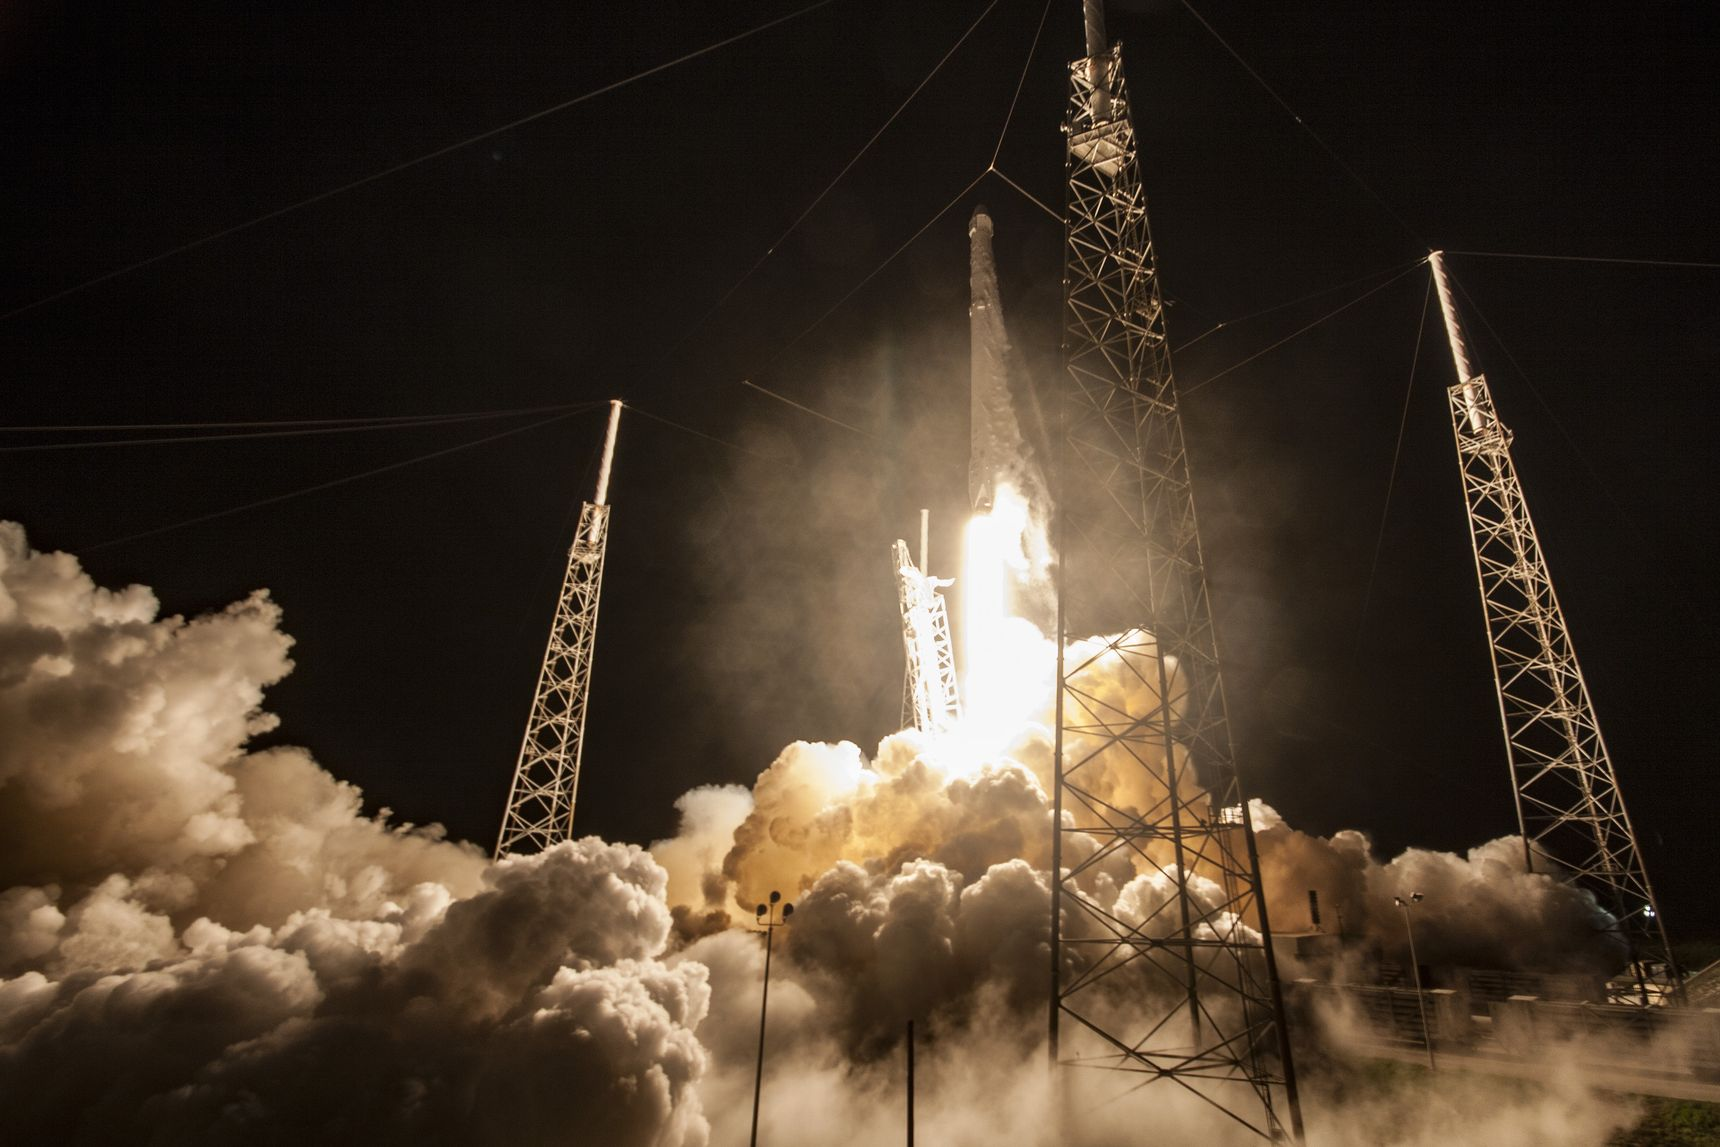 Image Credit: SpaceX